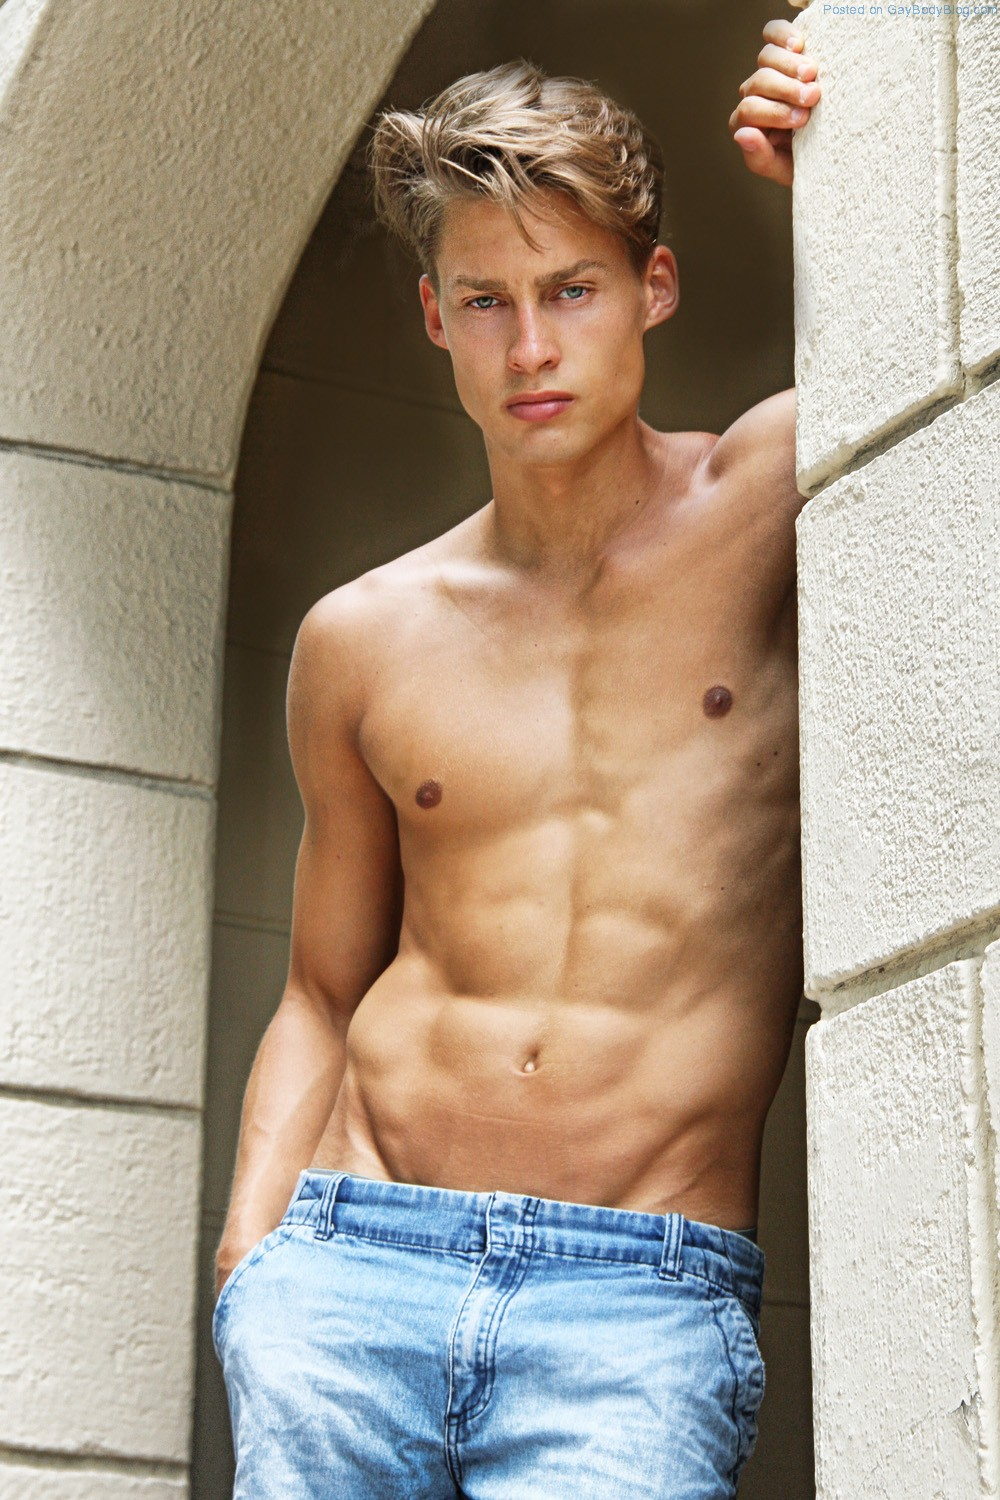 Cute And Fit Newcomer Ulrik Nielsen - Gay Body Blog